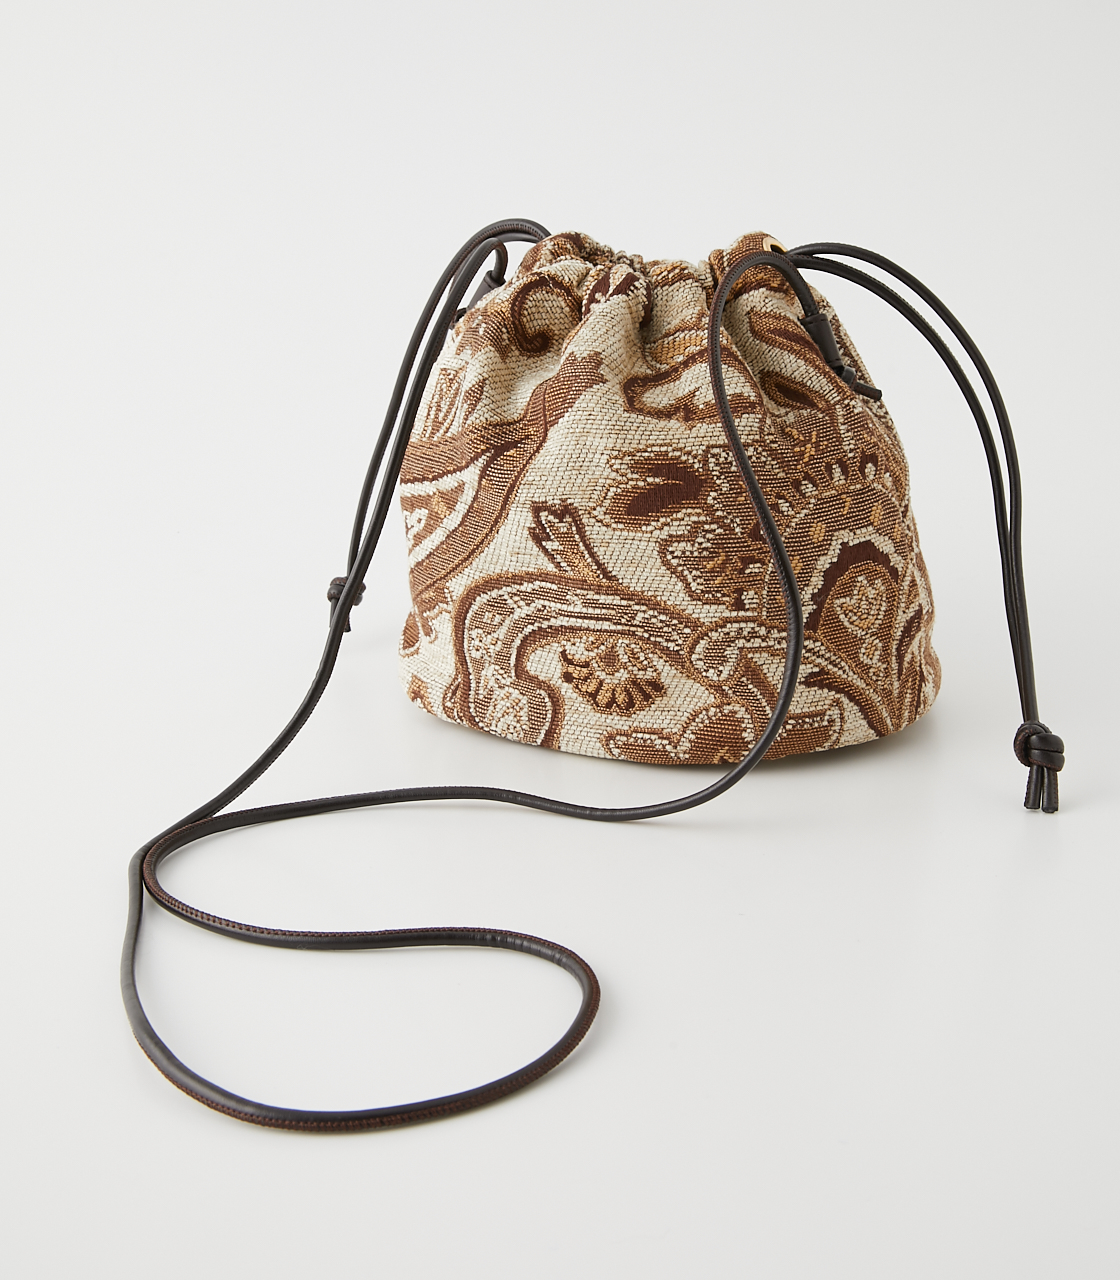 PAISLEY JACQUARD GATHER BAG/ペイズリージャガードギャザーバッグ 詳細画像 柄BEG 2